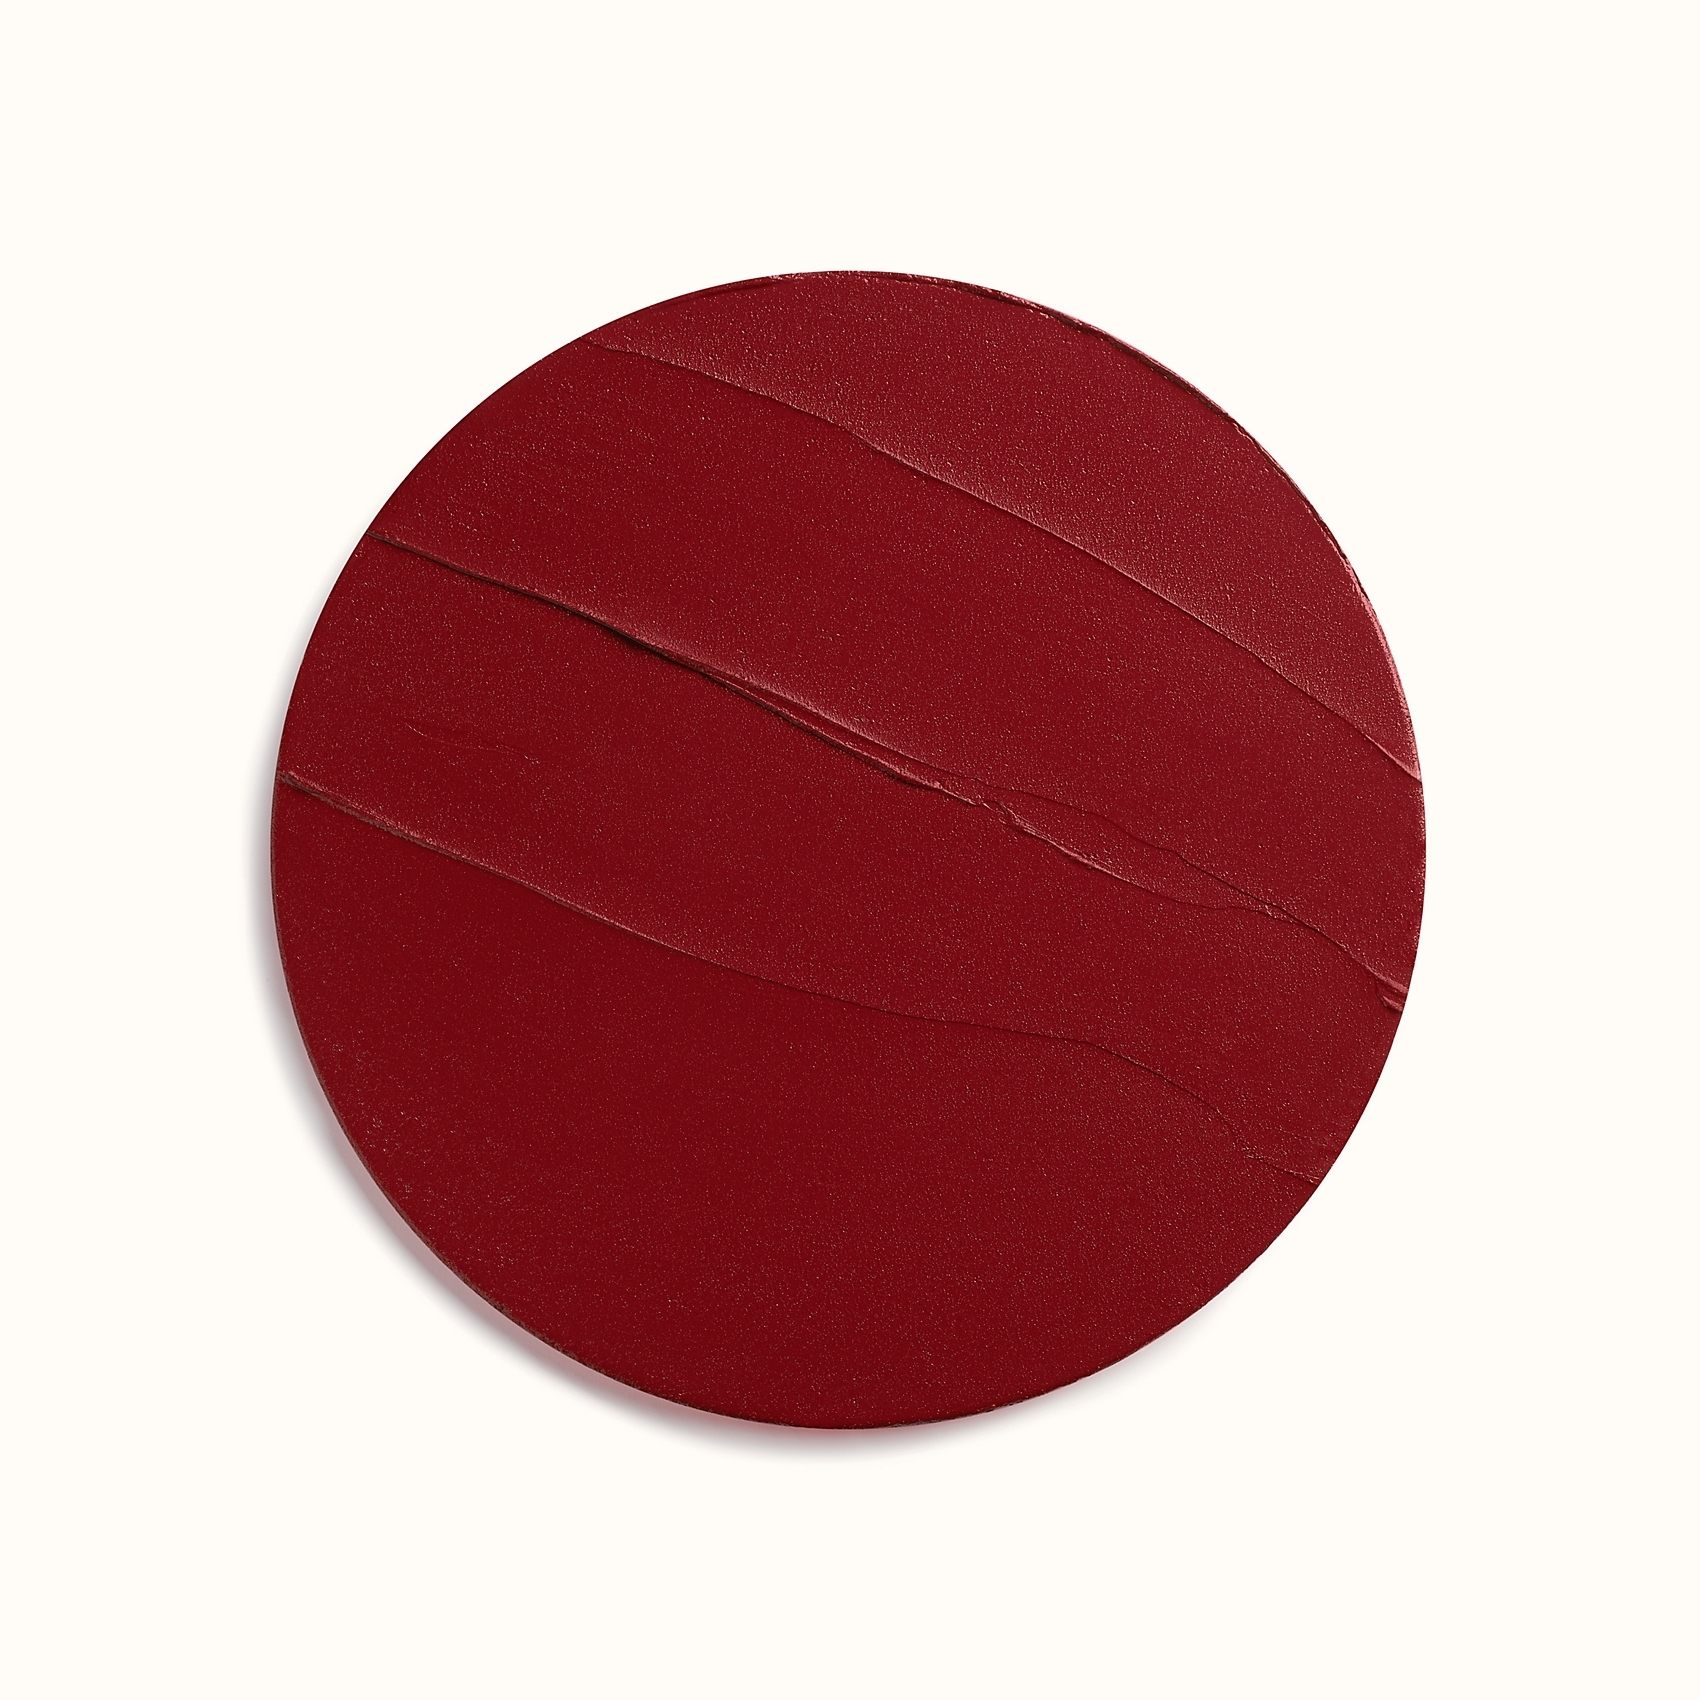 85 Rouge H [+1.990.000 ₫]